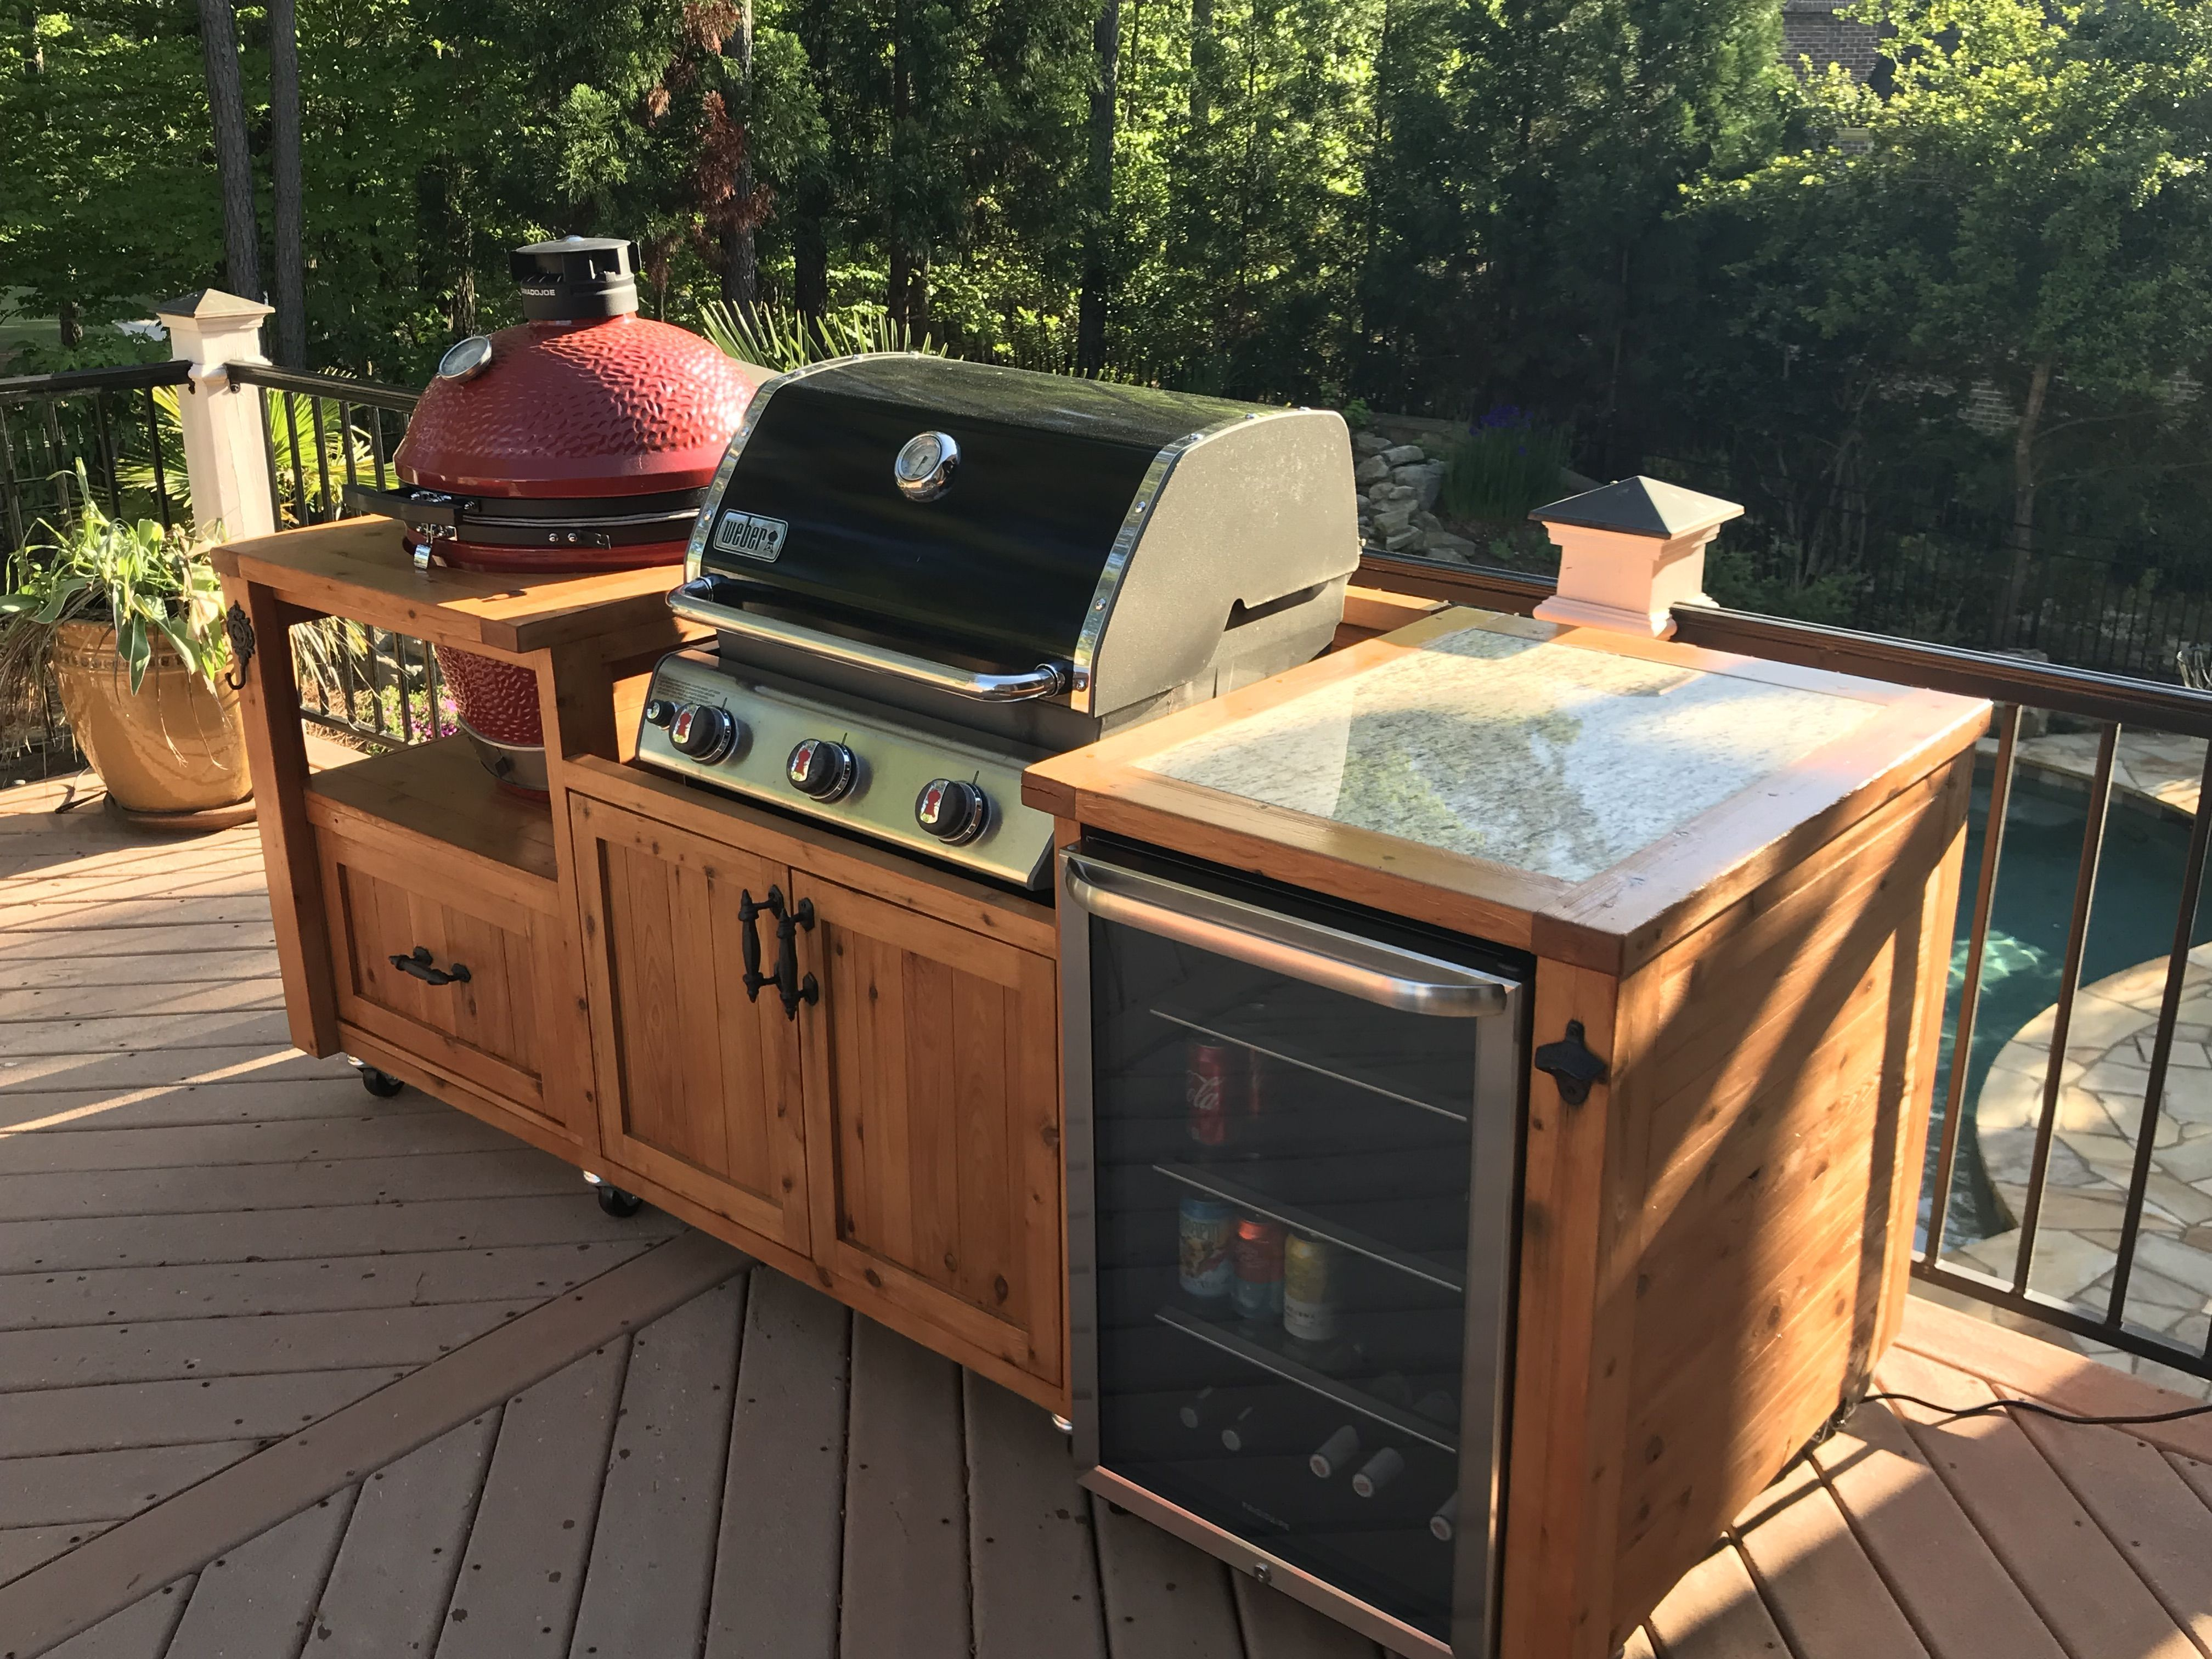 Affordable Outdoor Kitchens Customized For Your Kamado Joe Big